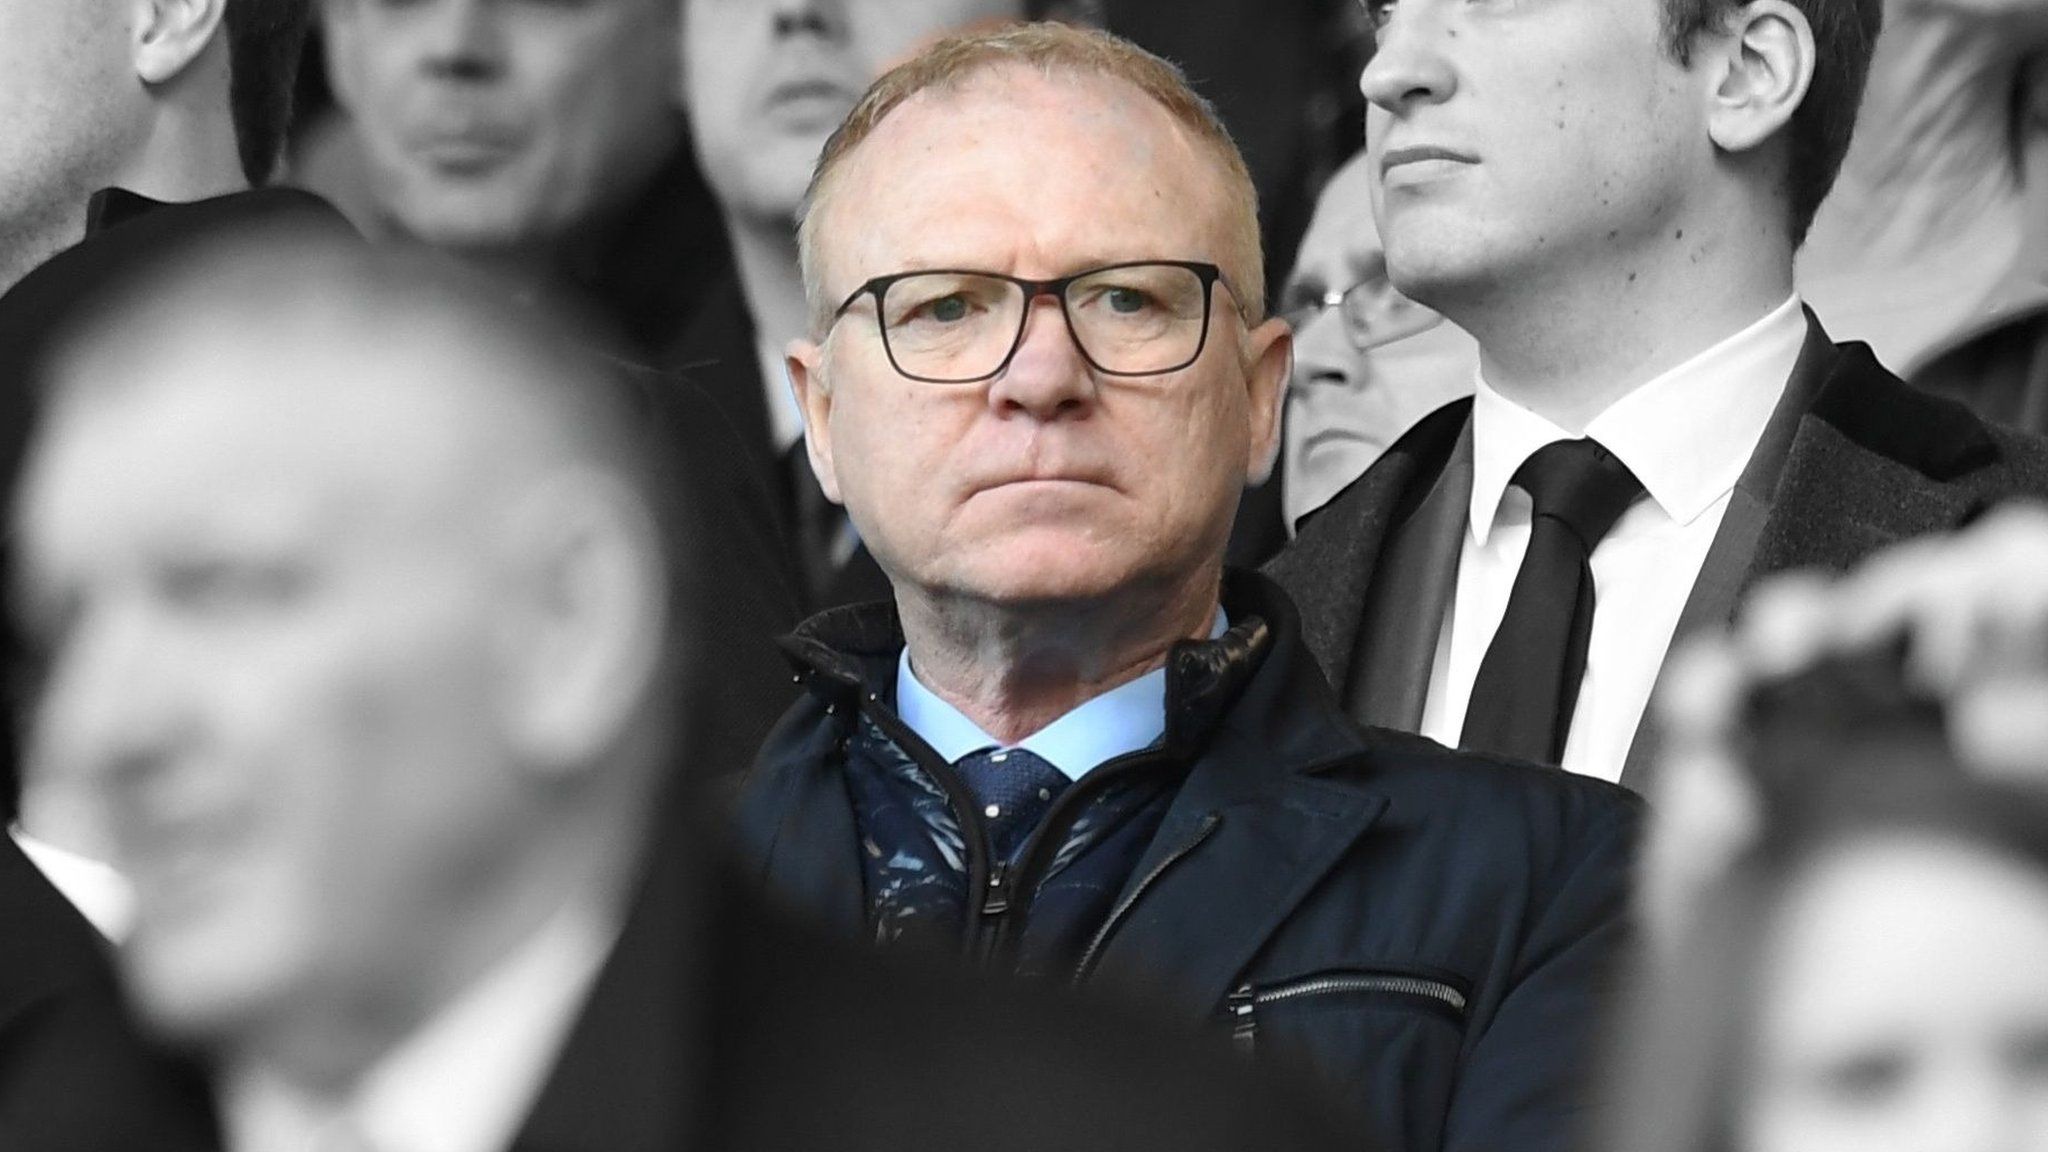 Scotland: Alex McLeish exits after poor start to Euro 2020 qualifying